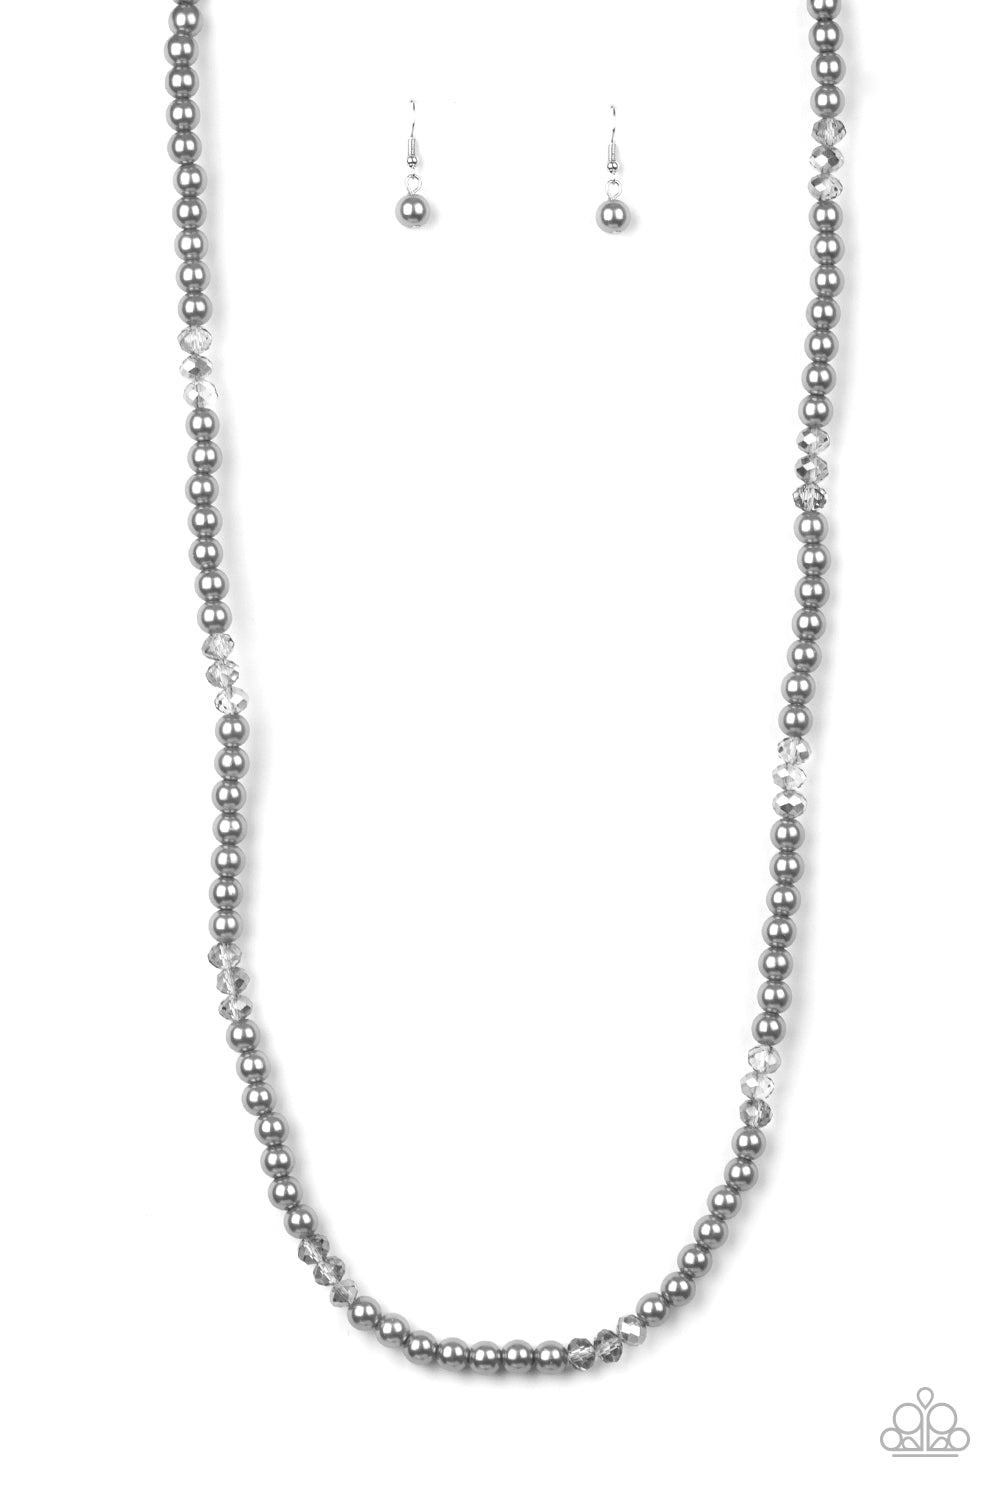 Paparazzi Girls Have More FUNDS Silver Necklace